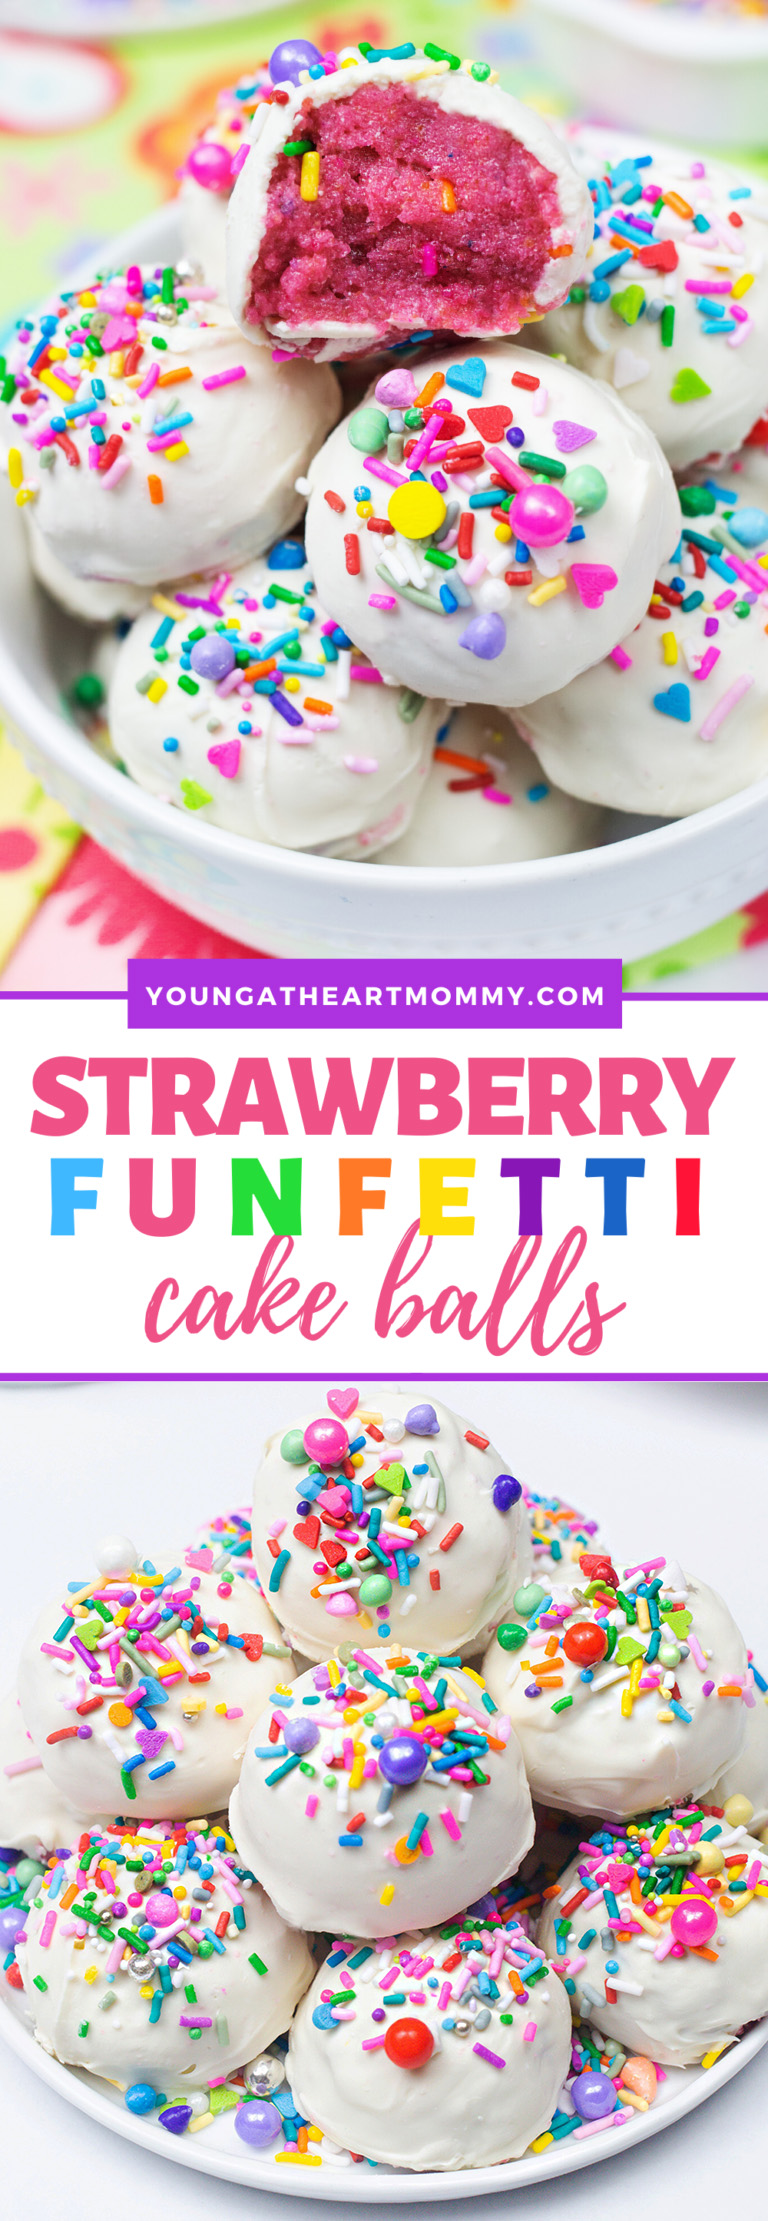 Easy Strawberry Funfetti Cake Balls Recipe